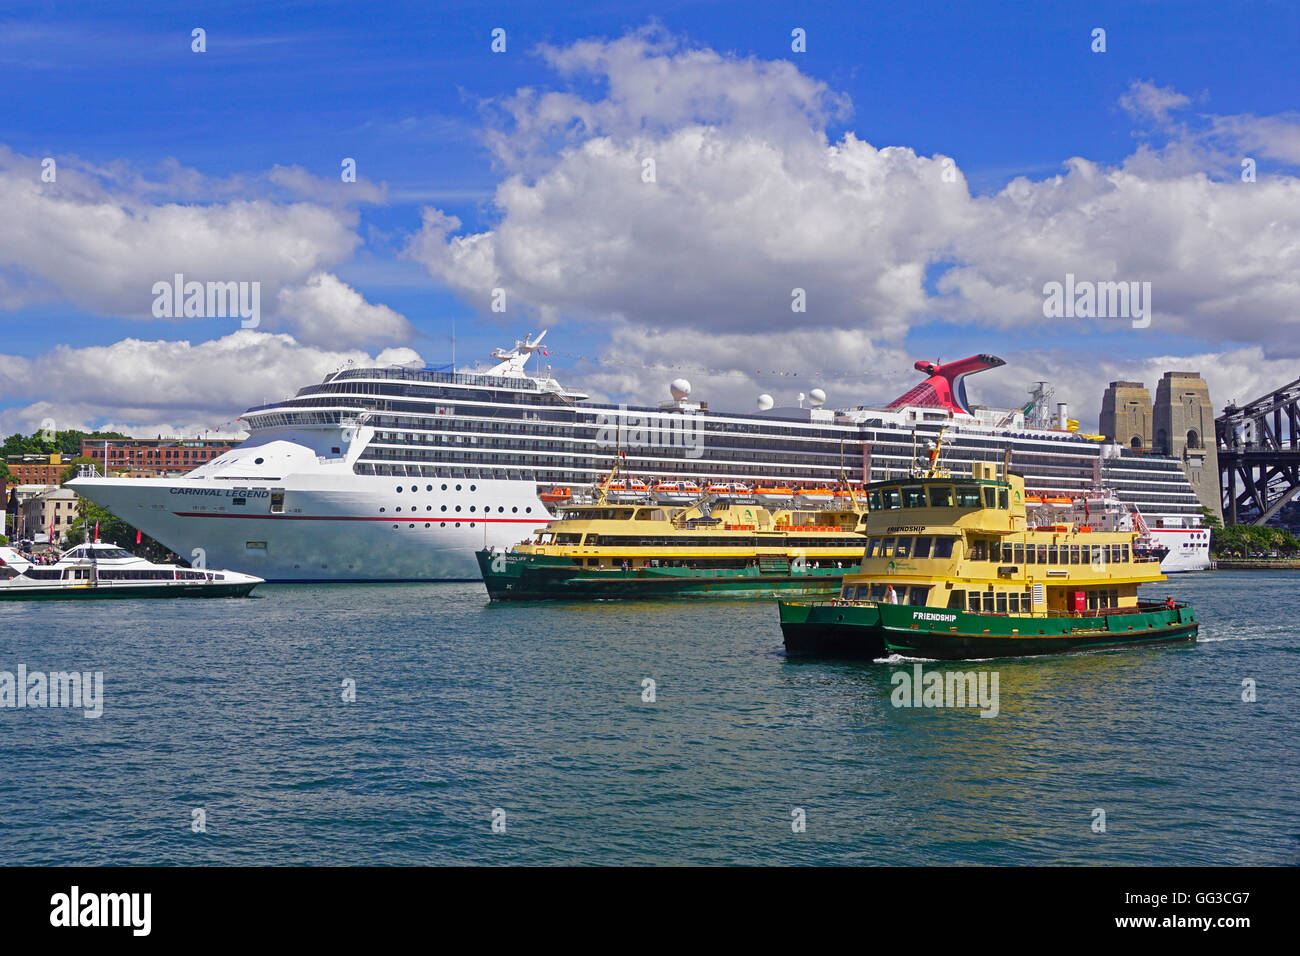 Carnival Legend cruise ship and Sydney Ferries in Sydney Harbour. - Stock Image